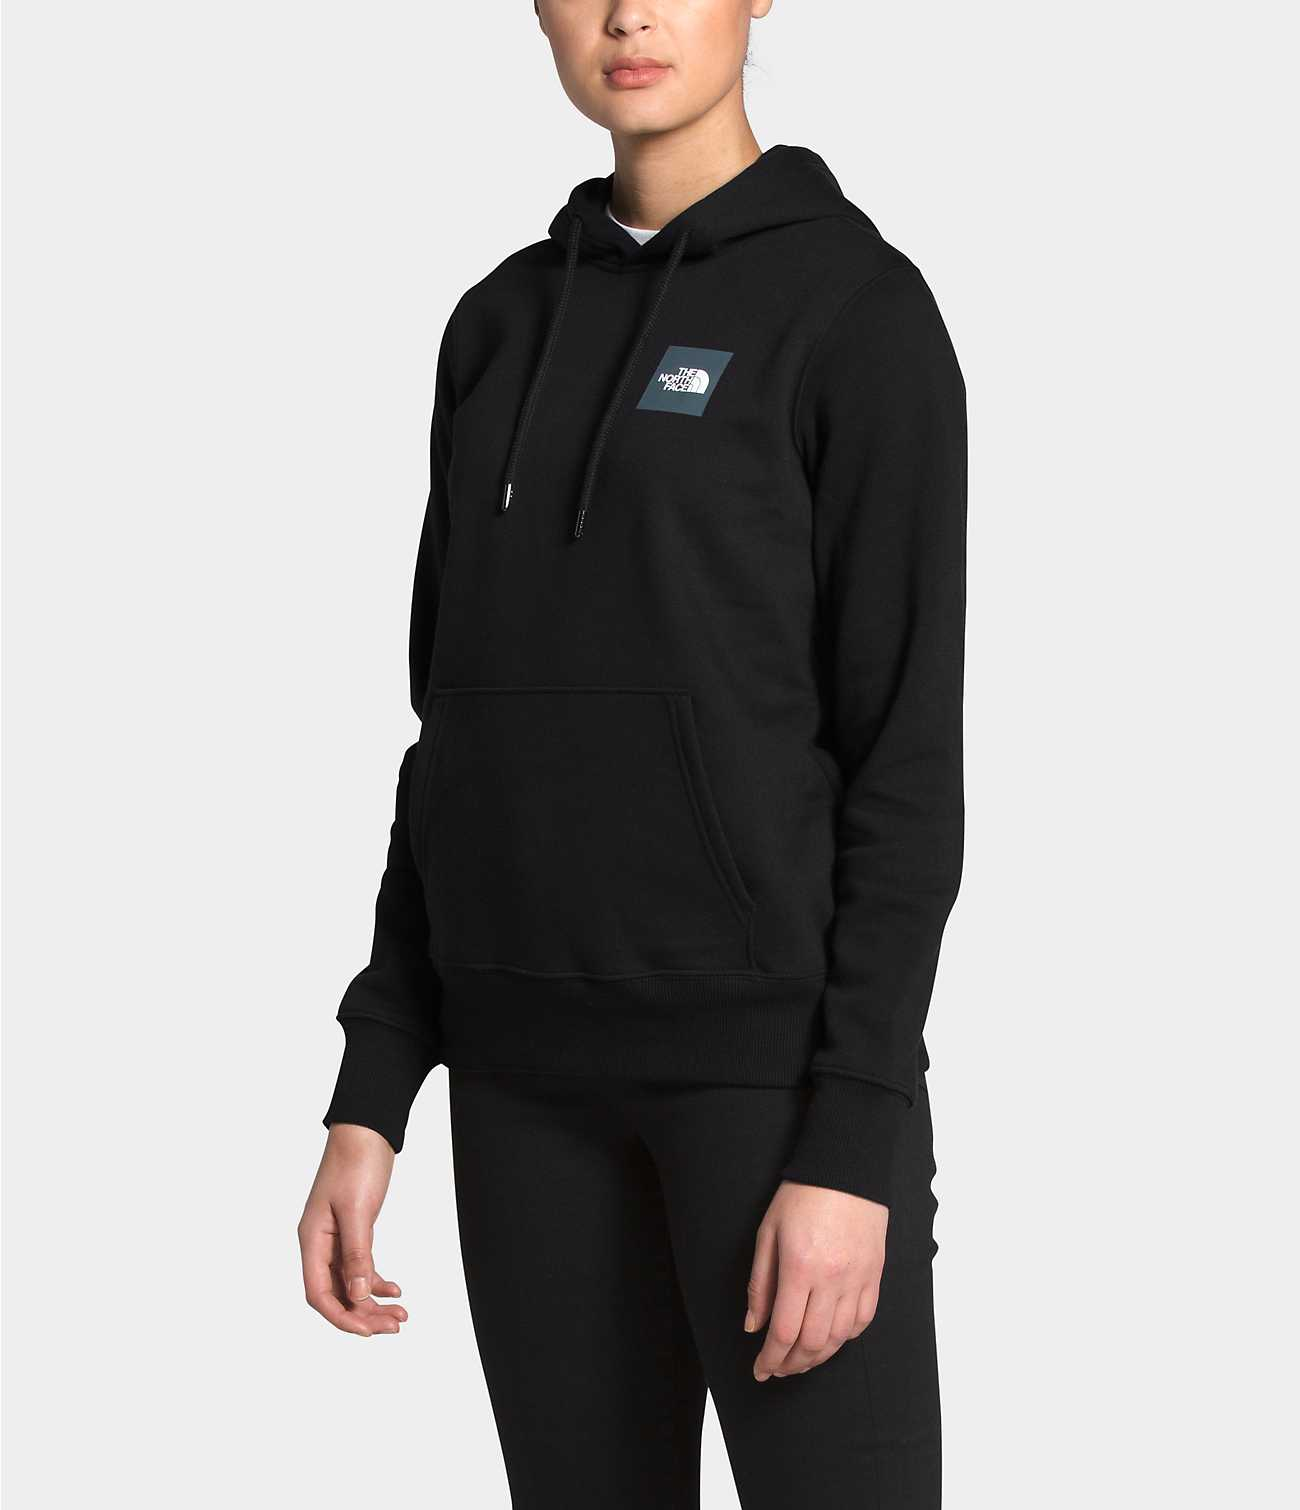 THE NORTH FACE W'S HOODIES W BOX PULLOVER HOODIE